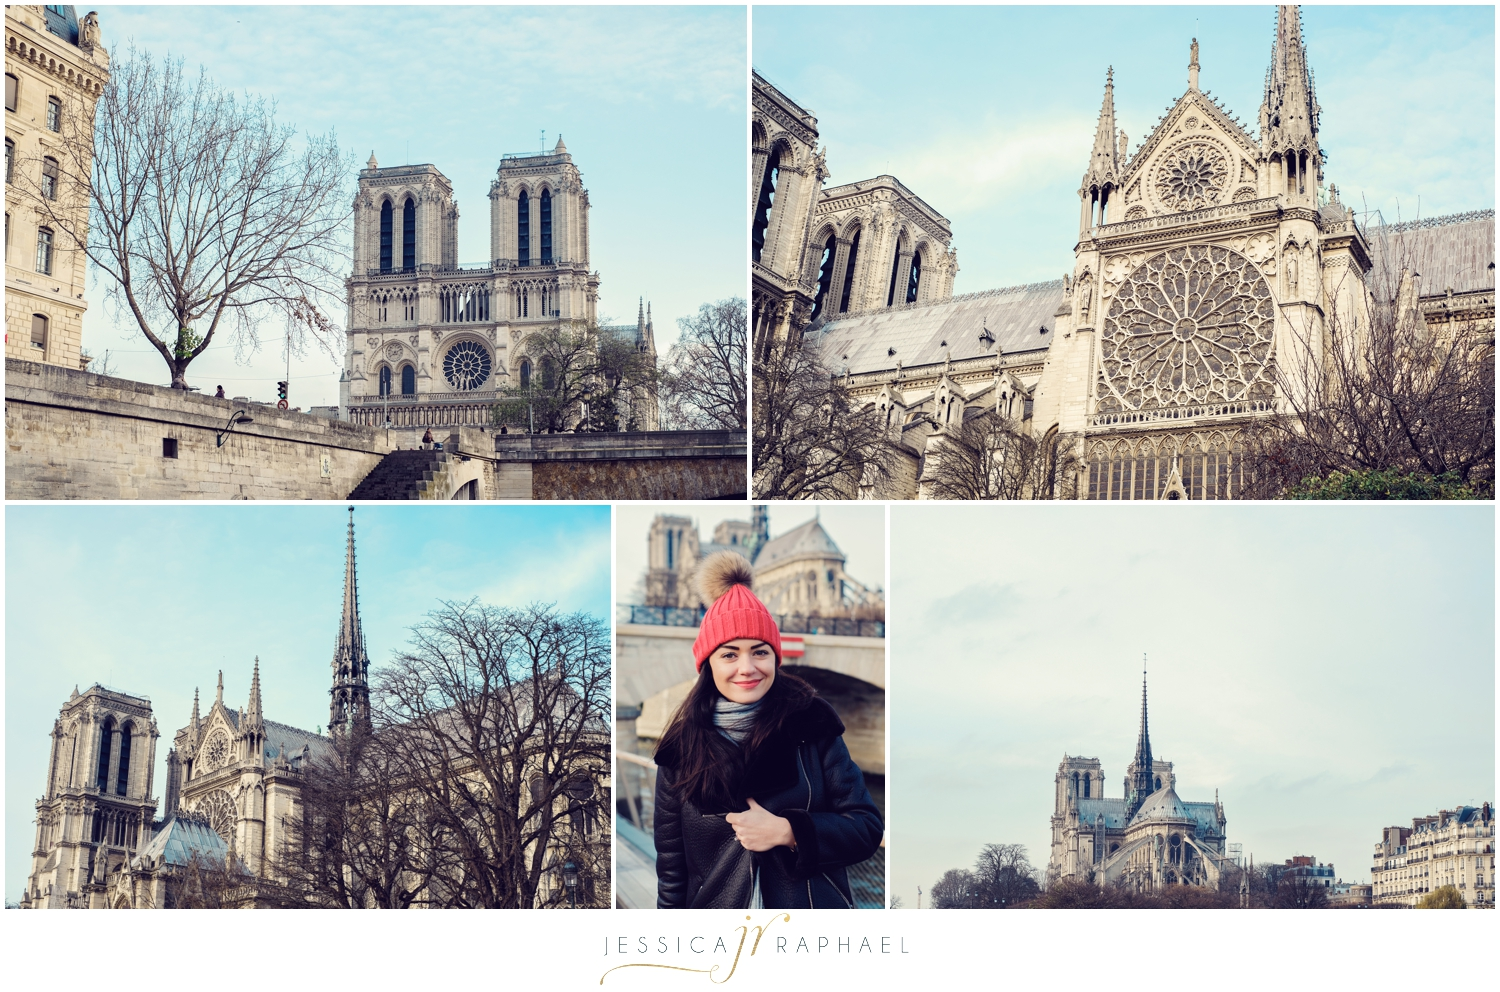 In a complete whirlwind on the boat passing Notre Dame.